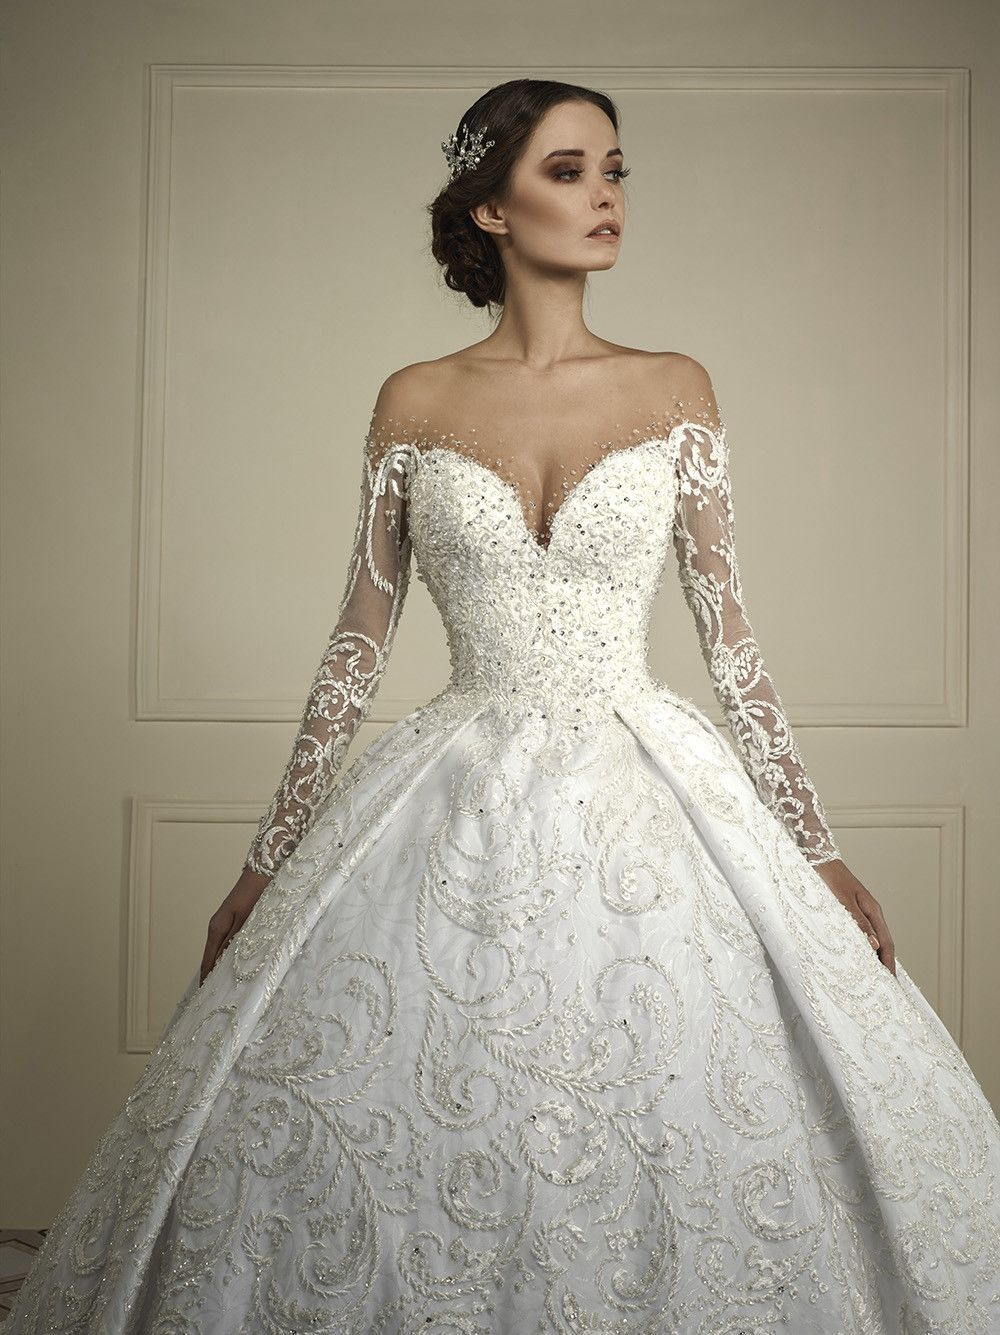 Item Type Wedding Dresses Decoration Draped Button Pearls Criss Cross Lace Crystal Appliques Tiered Bow Wedding Dress Fabrics Princess Wedding Dresses Gowns [ jpg ]